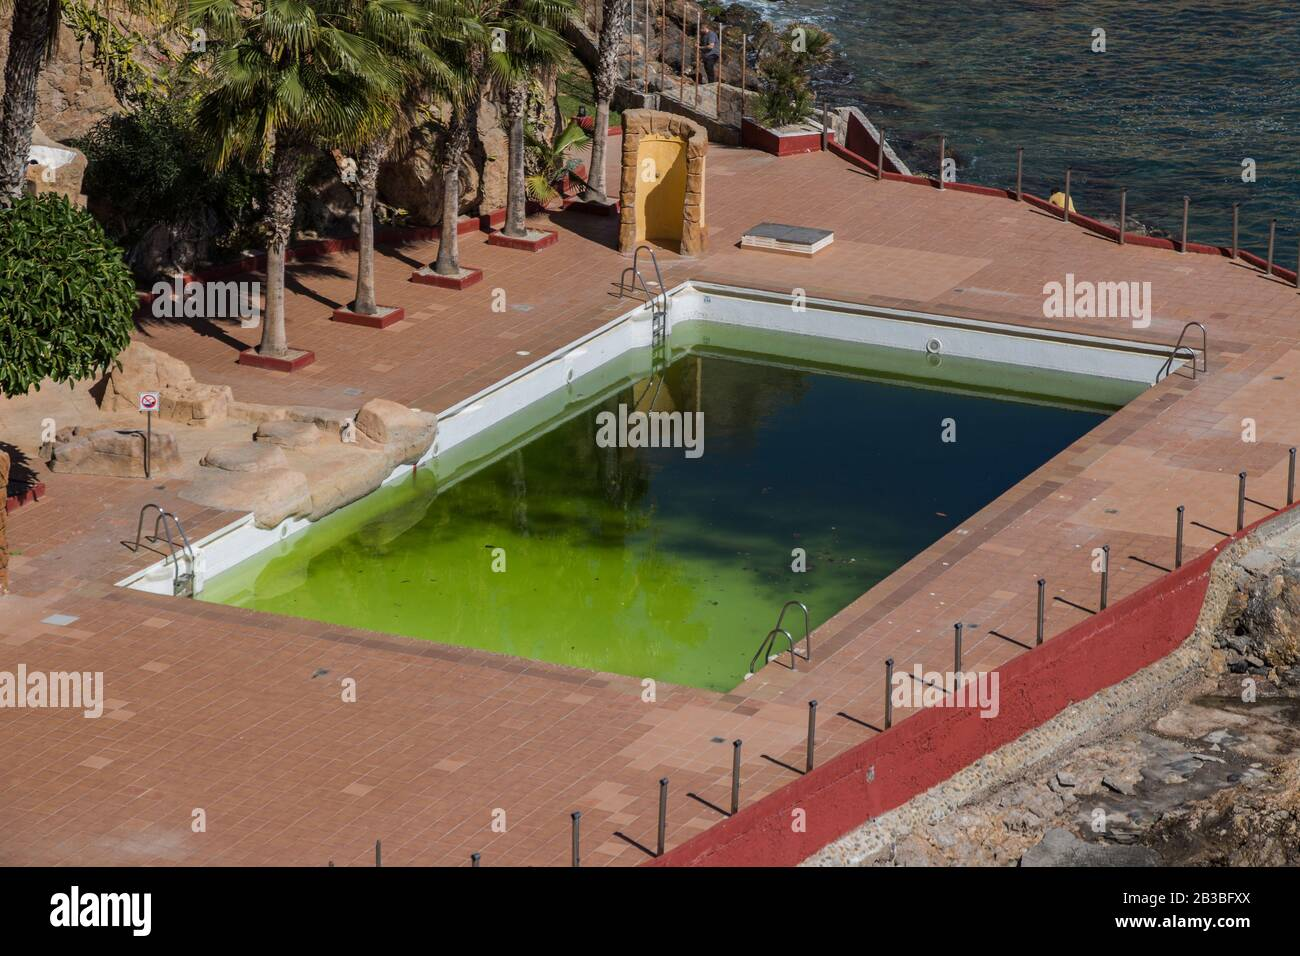 A Dirty And Abandoned Pool With Green Water Scary Pool Dyrty Waterl Abandoned Swimming Pool Ruined Pool Stock Photo Alamy